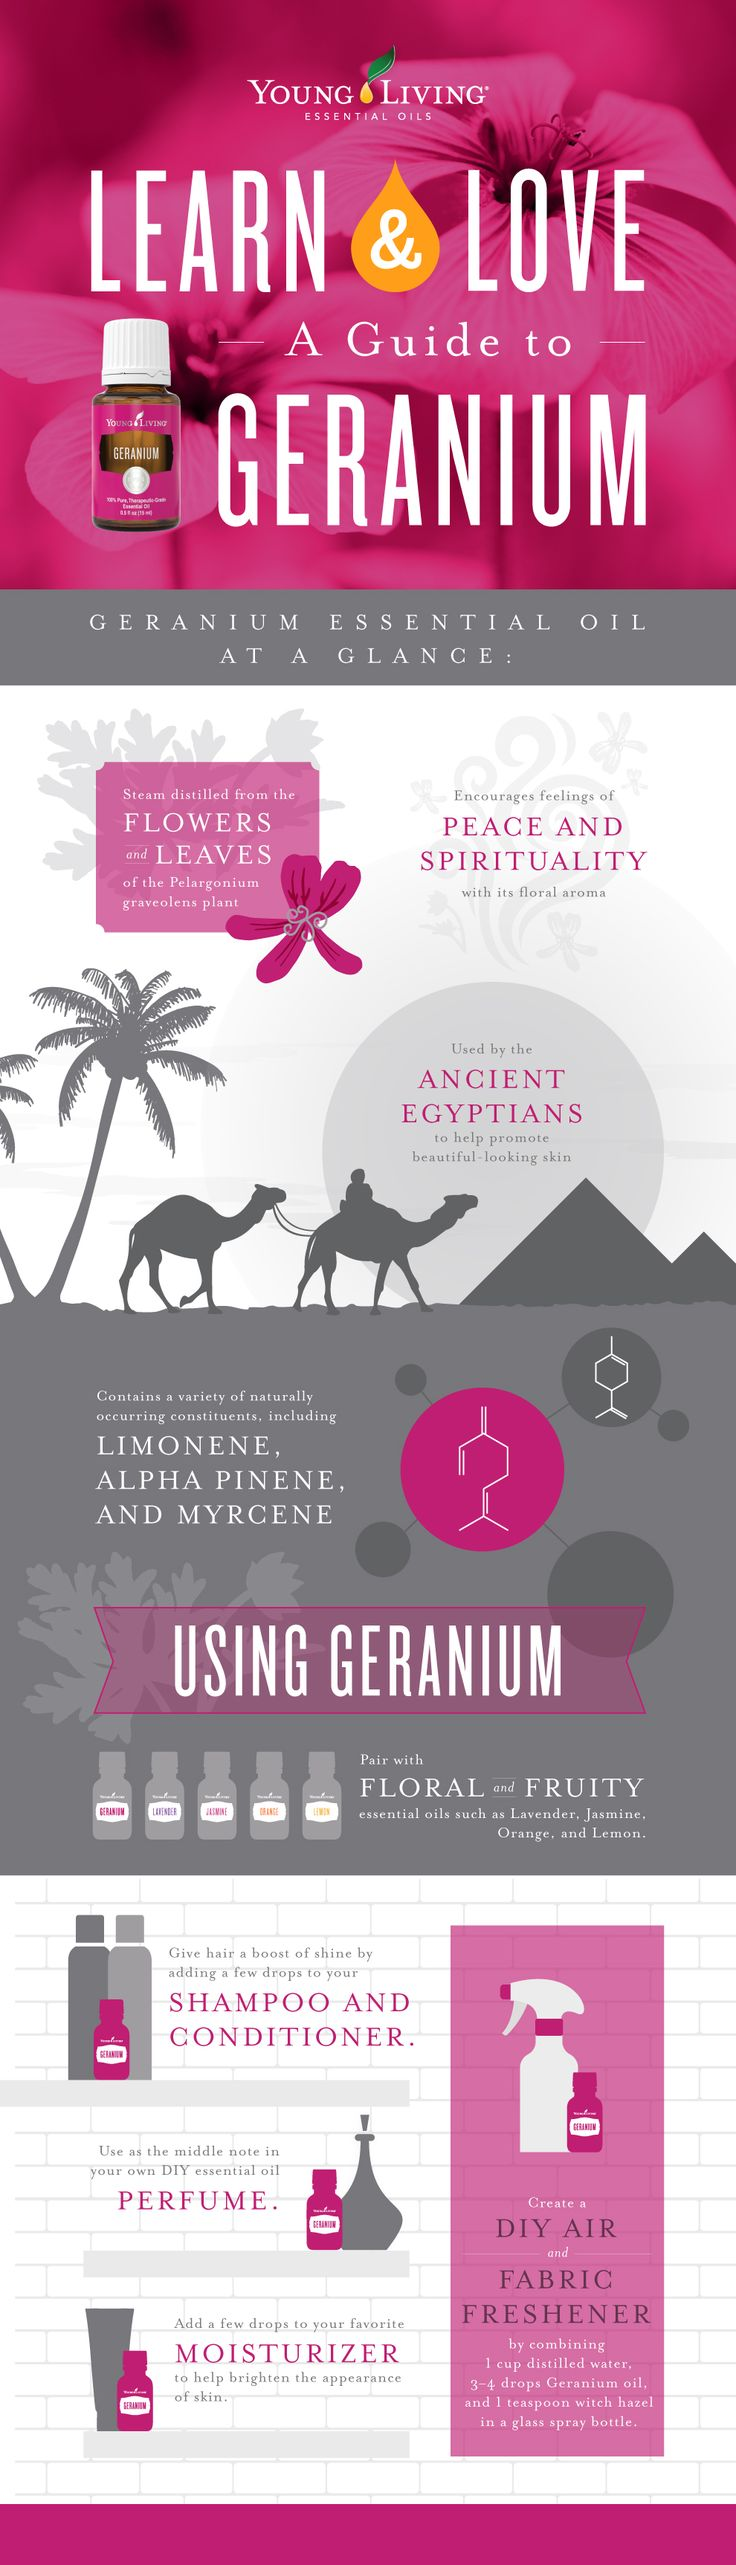 Young Living Essential Oils | All About Geranium Infographic | WWW.THESAVVYOILER.COM